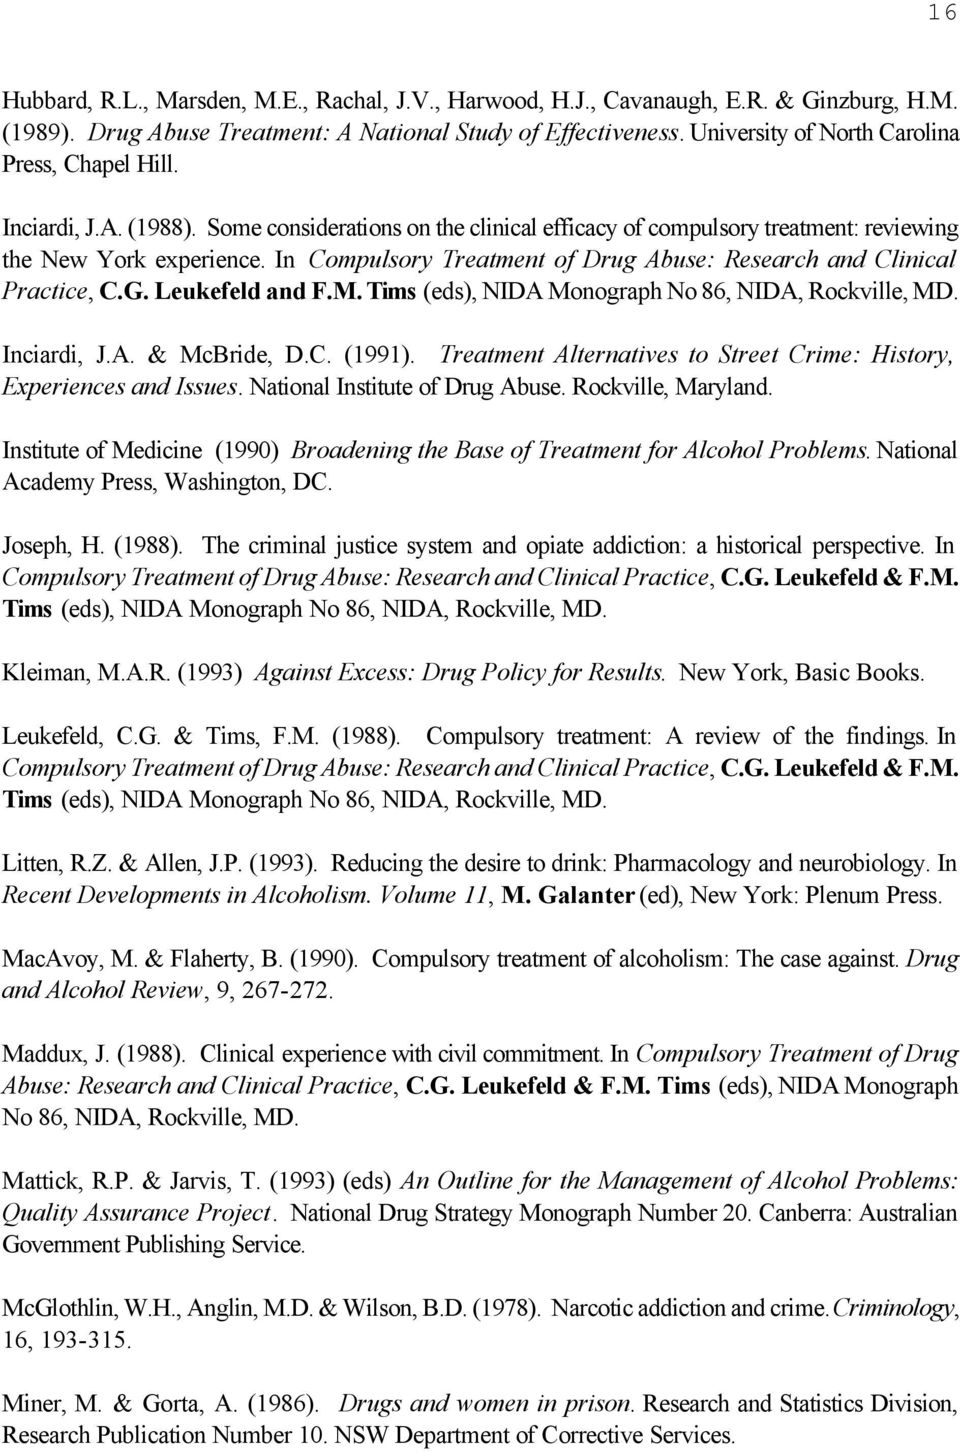 In Compulsory Treatment of Drug Abuse: Research and Clinical Practice, C.G. Leukefeld and F.M. Tims (eds), NIDA Monograph No 86, NIDA, Rockville, MD. Inciardi, J.A. & McBride, D.C. (1991).